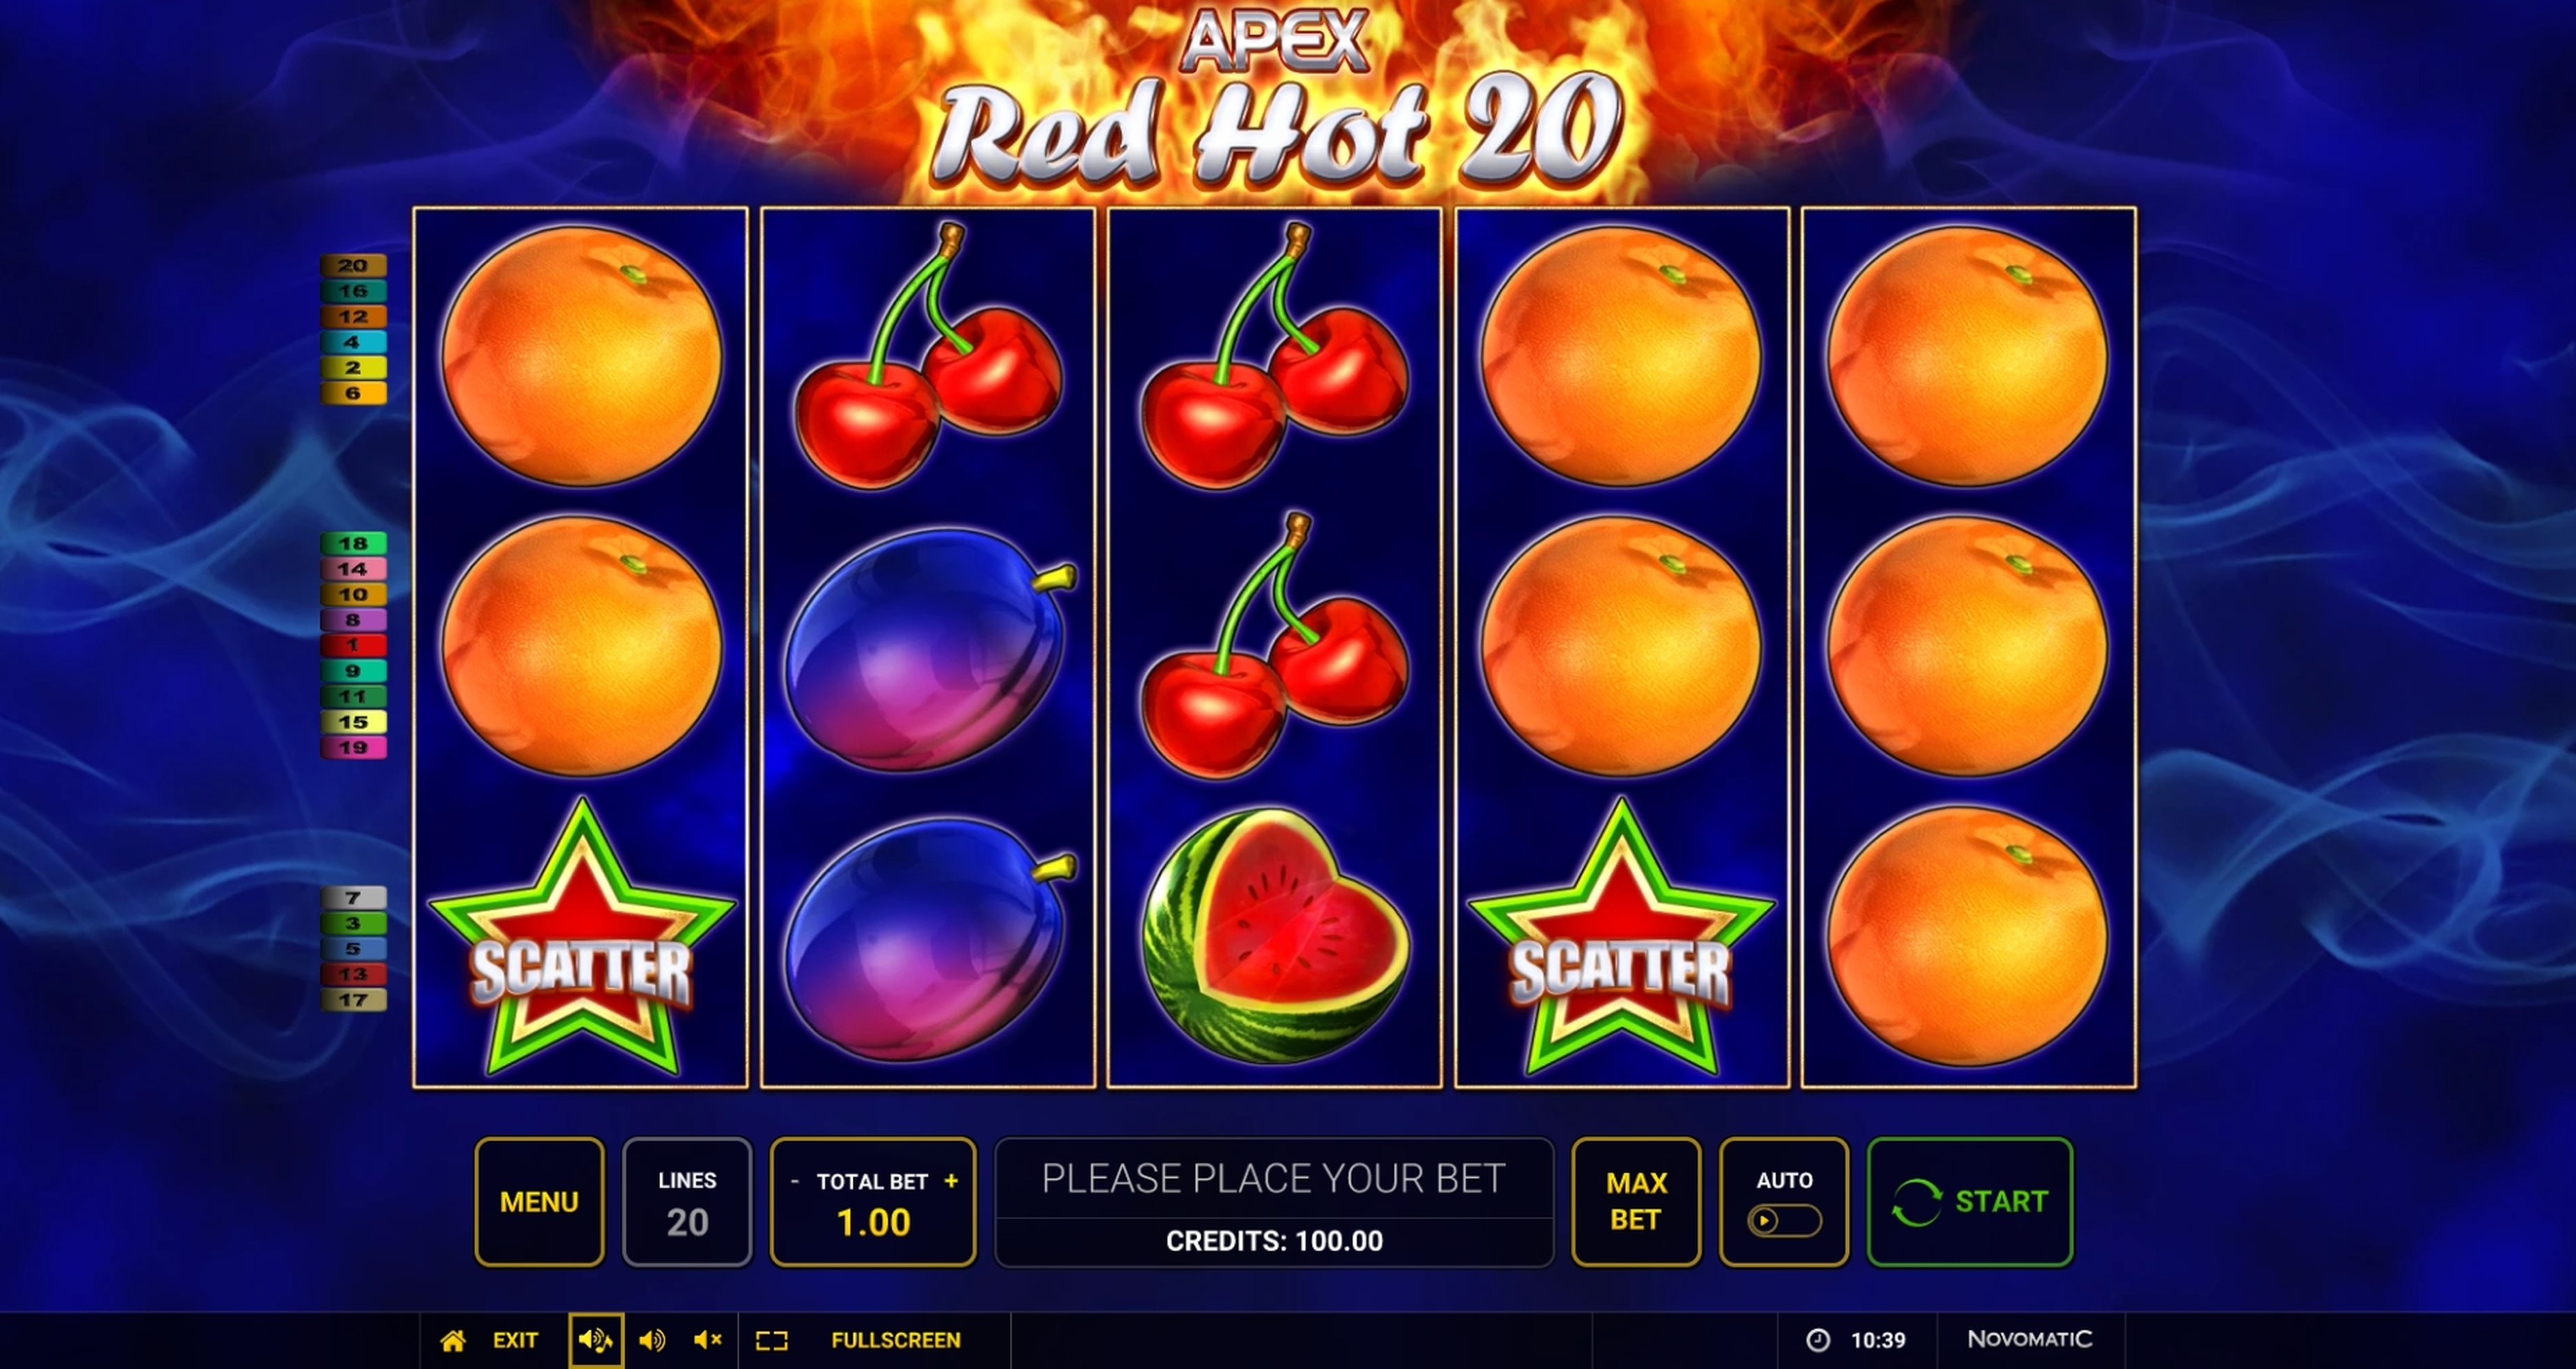 Reels in Red Hot 20 Slot Game by Apex Gaming